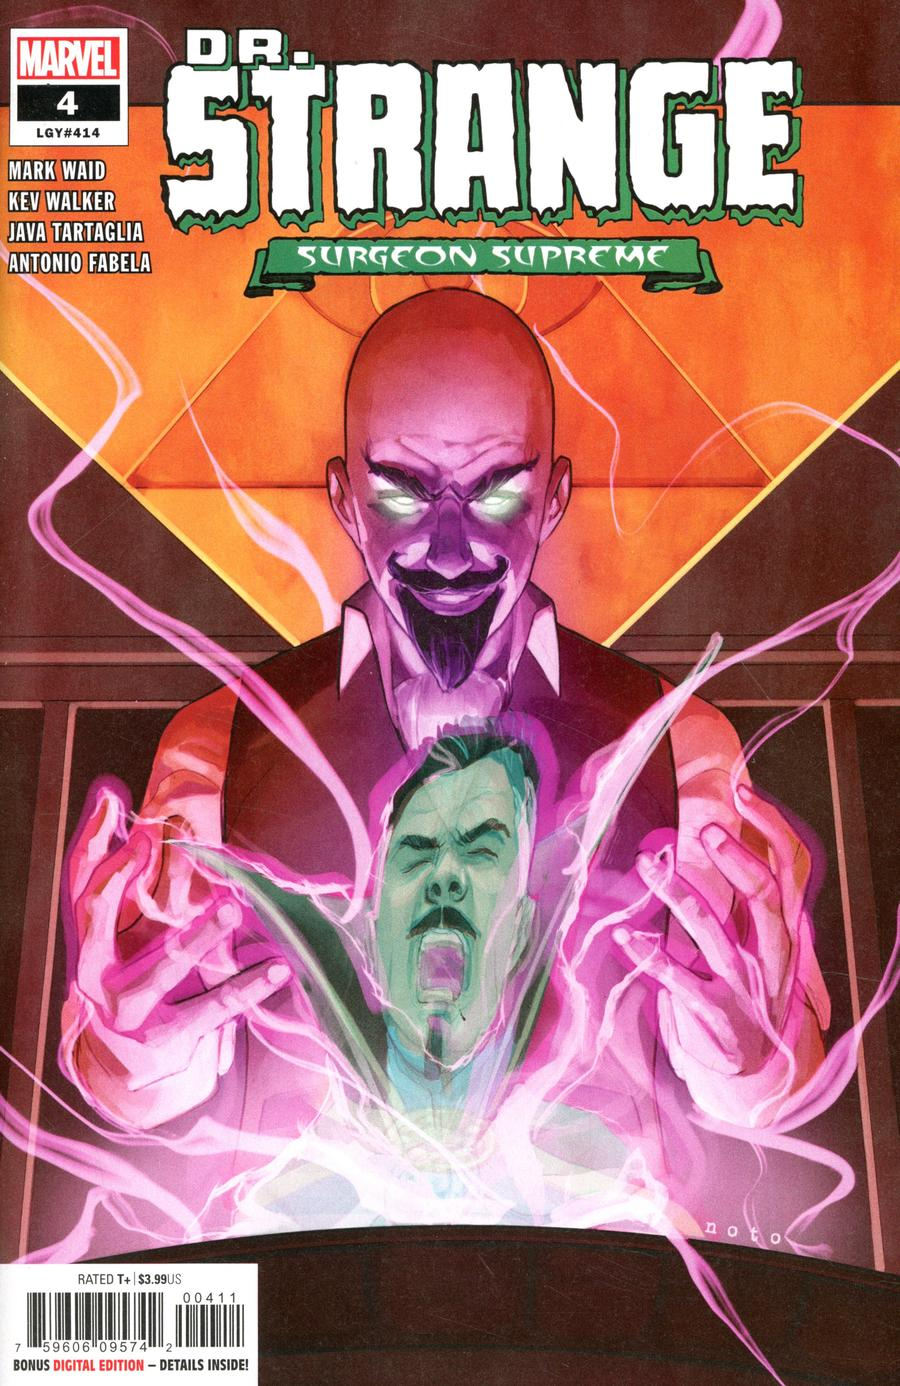 Doctor Strange Surgeon Supreme #4